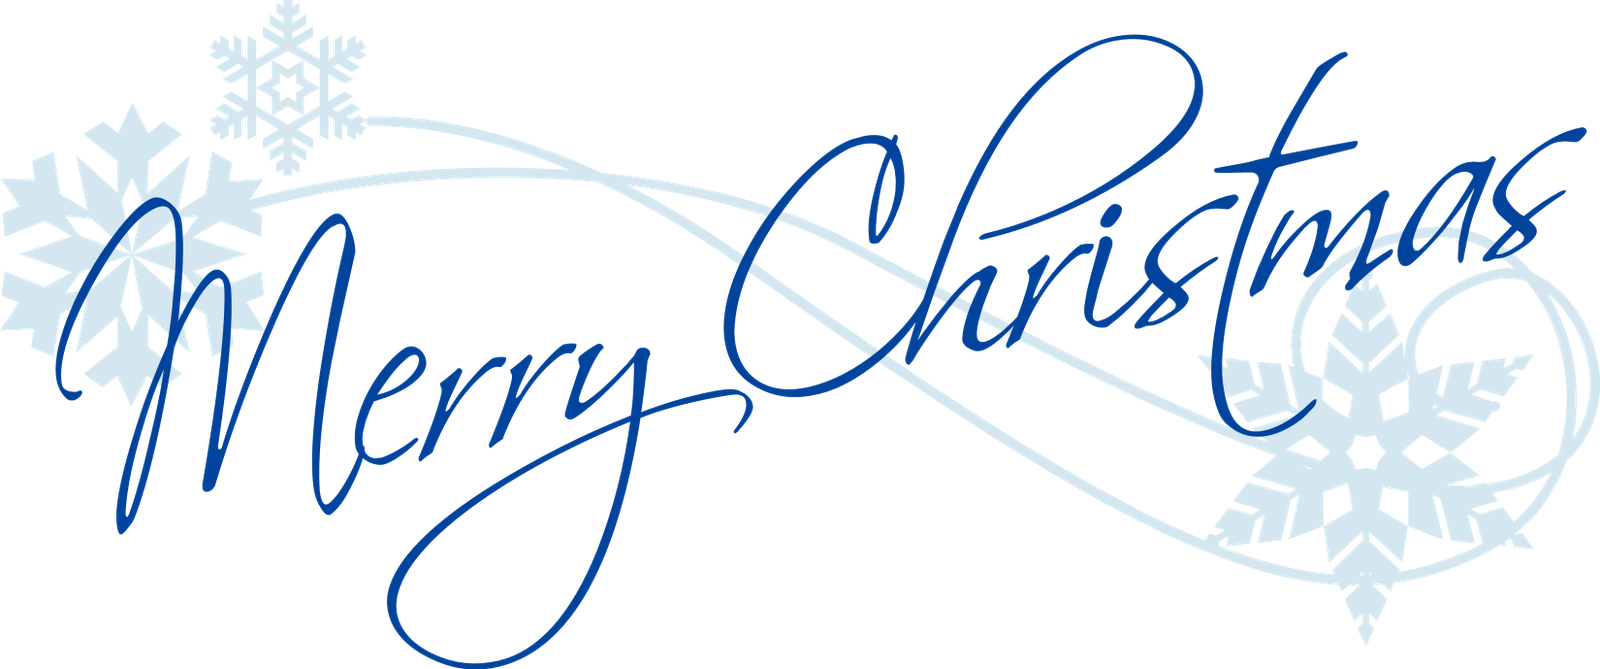 Merry Christmas Text PNG Transparent Free Images | PNG Only vector black and white